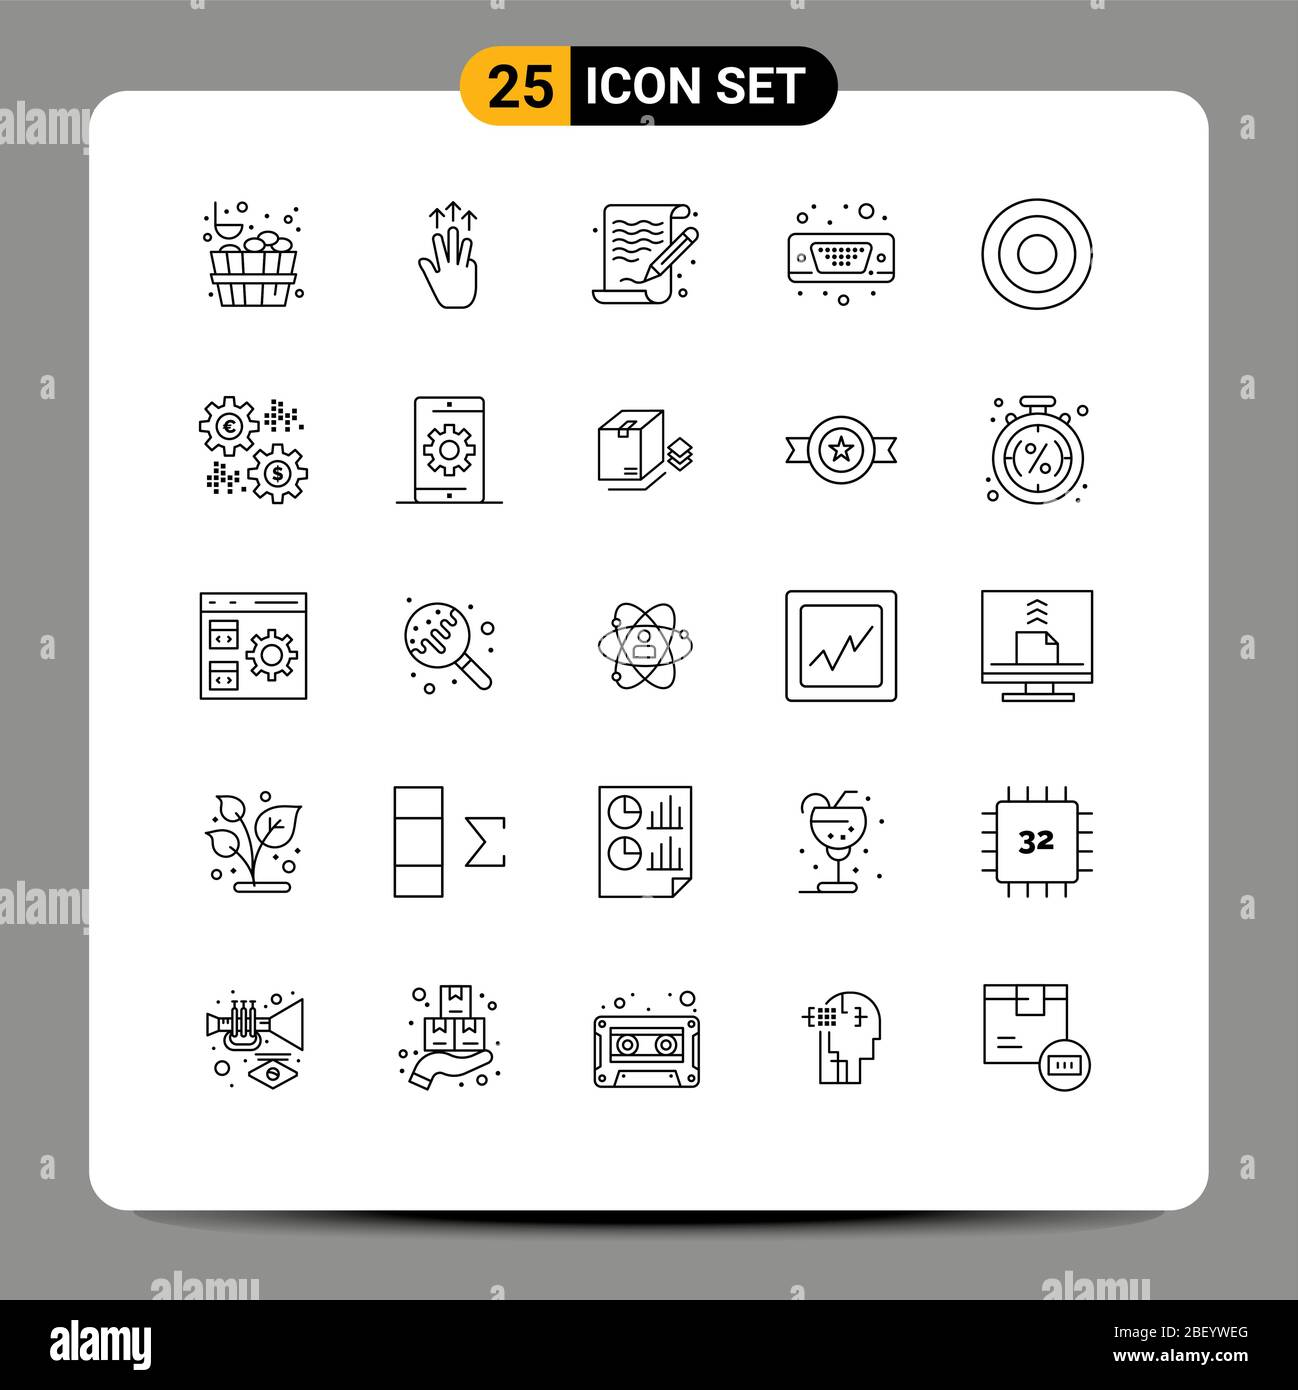 25 Line concept for Websites Mobile and Apps interface, vga, art, port, display Editable Vector Design Elements Stock Vector